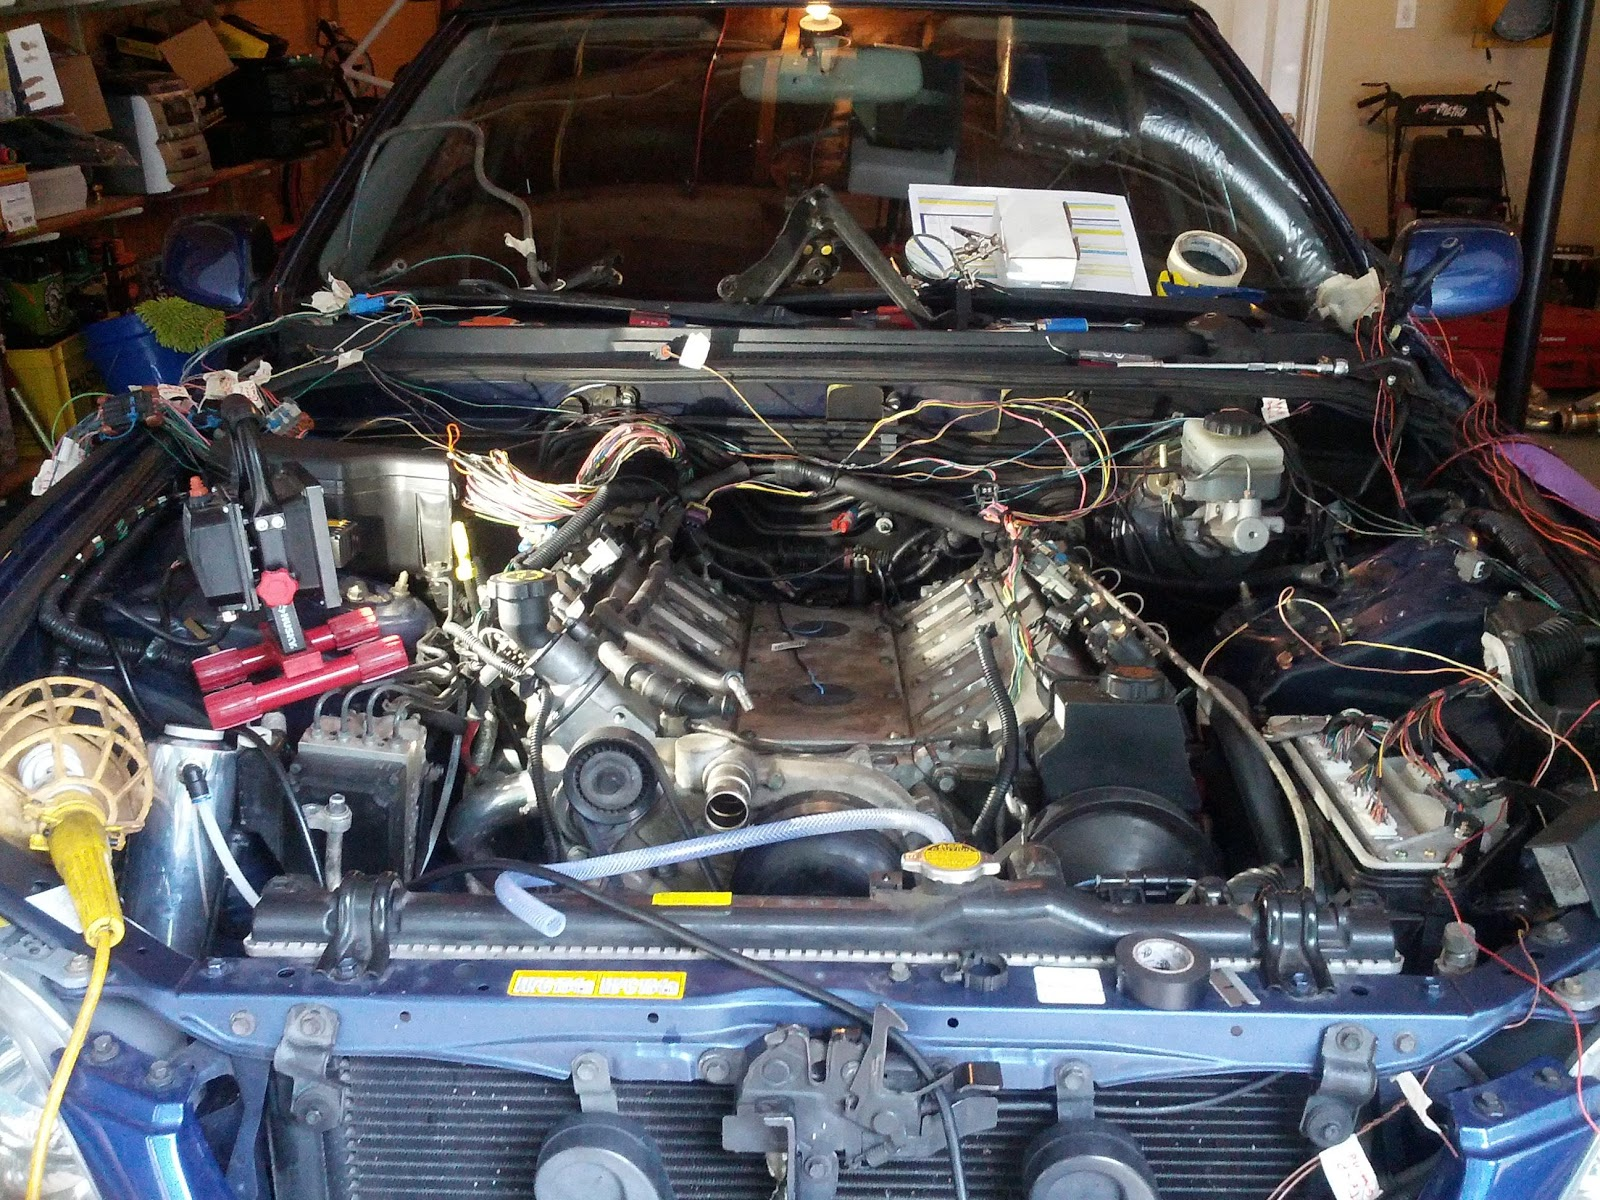 Is300 Ls1 T56 Daily Driver Build By Eng1nerd Lexus Is Xe10 Wiring Harness And Ecu For I Didnt Get Any Pictures Of The But It Was A Giant Mess Wires That Got Thinned Out Similar To 2jz